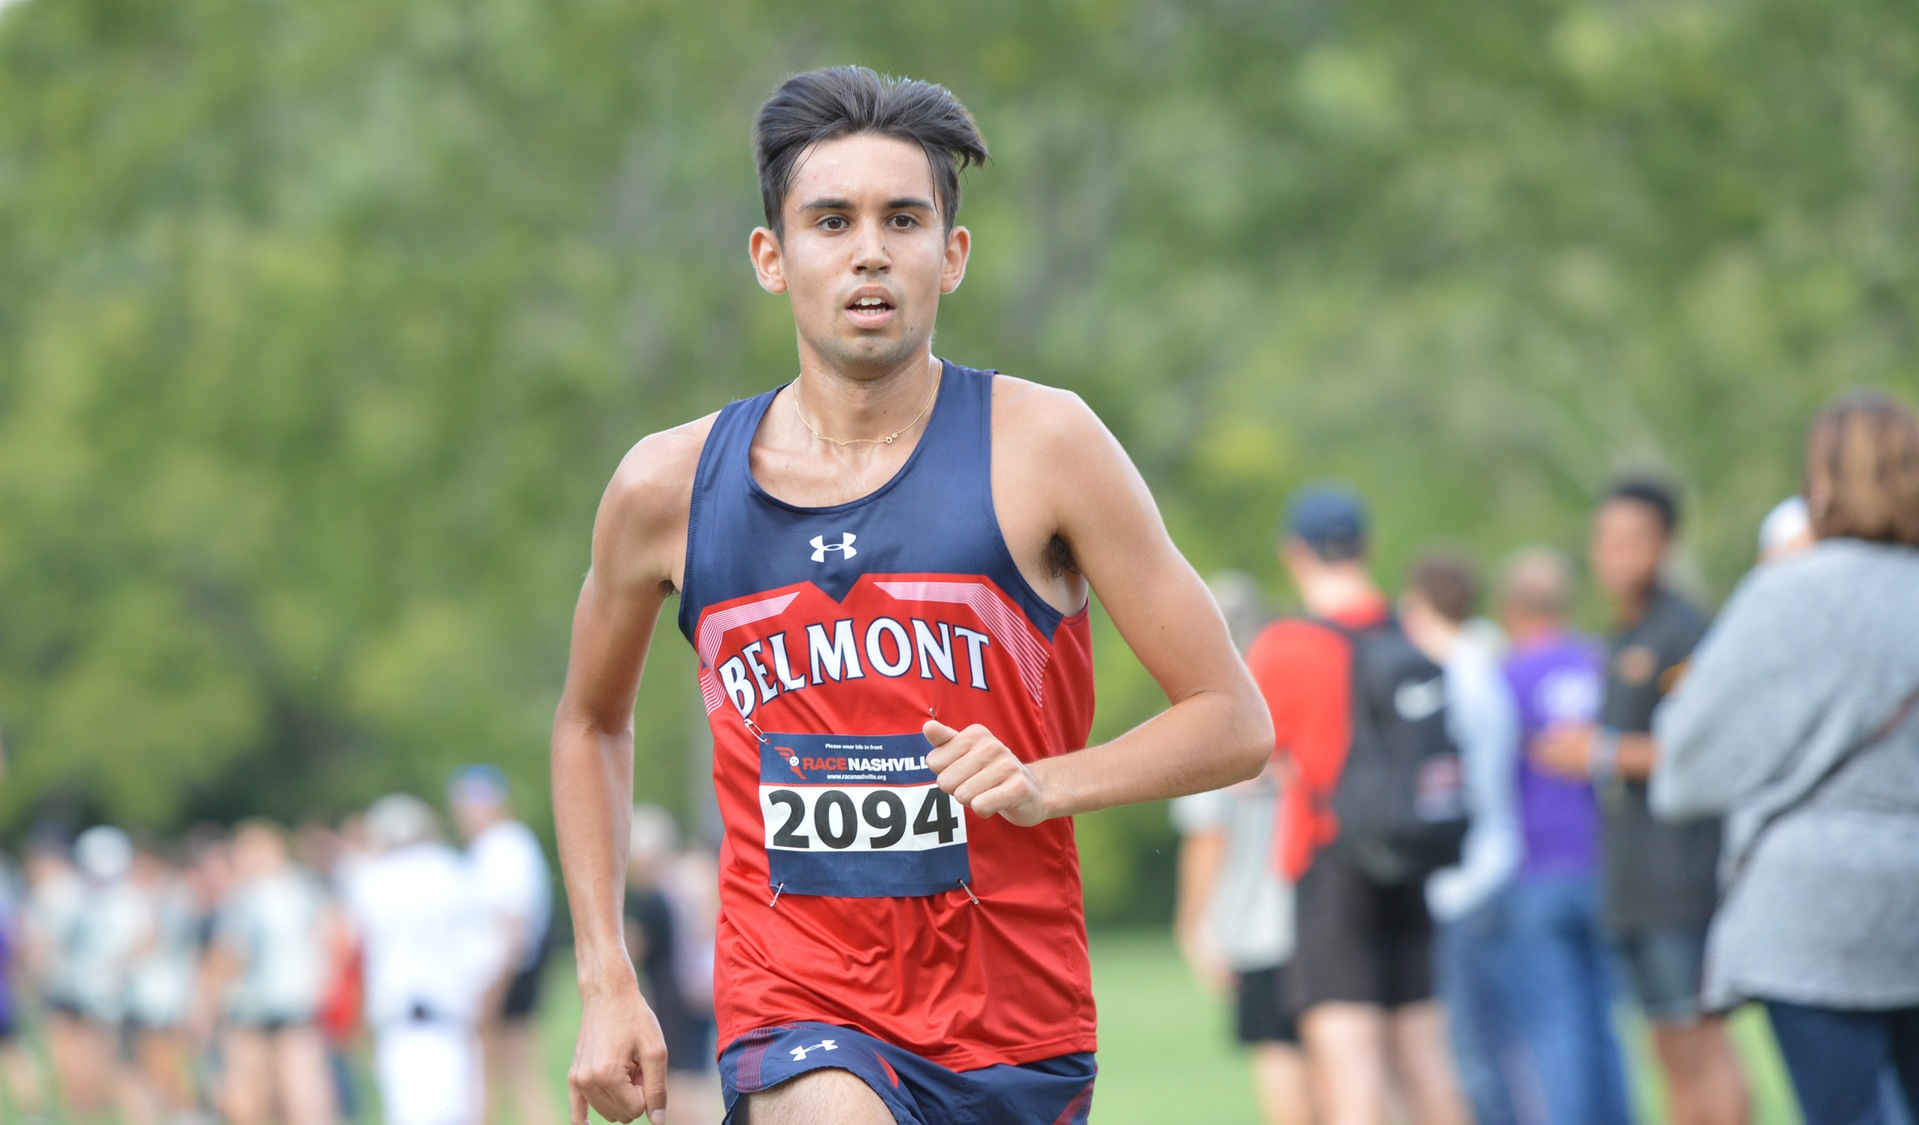 Thompson Races at NCAA East Preliminary Round